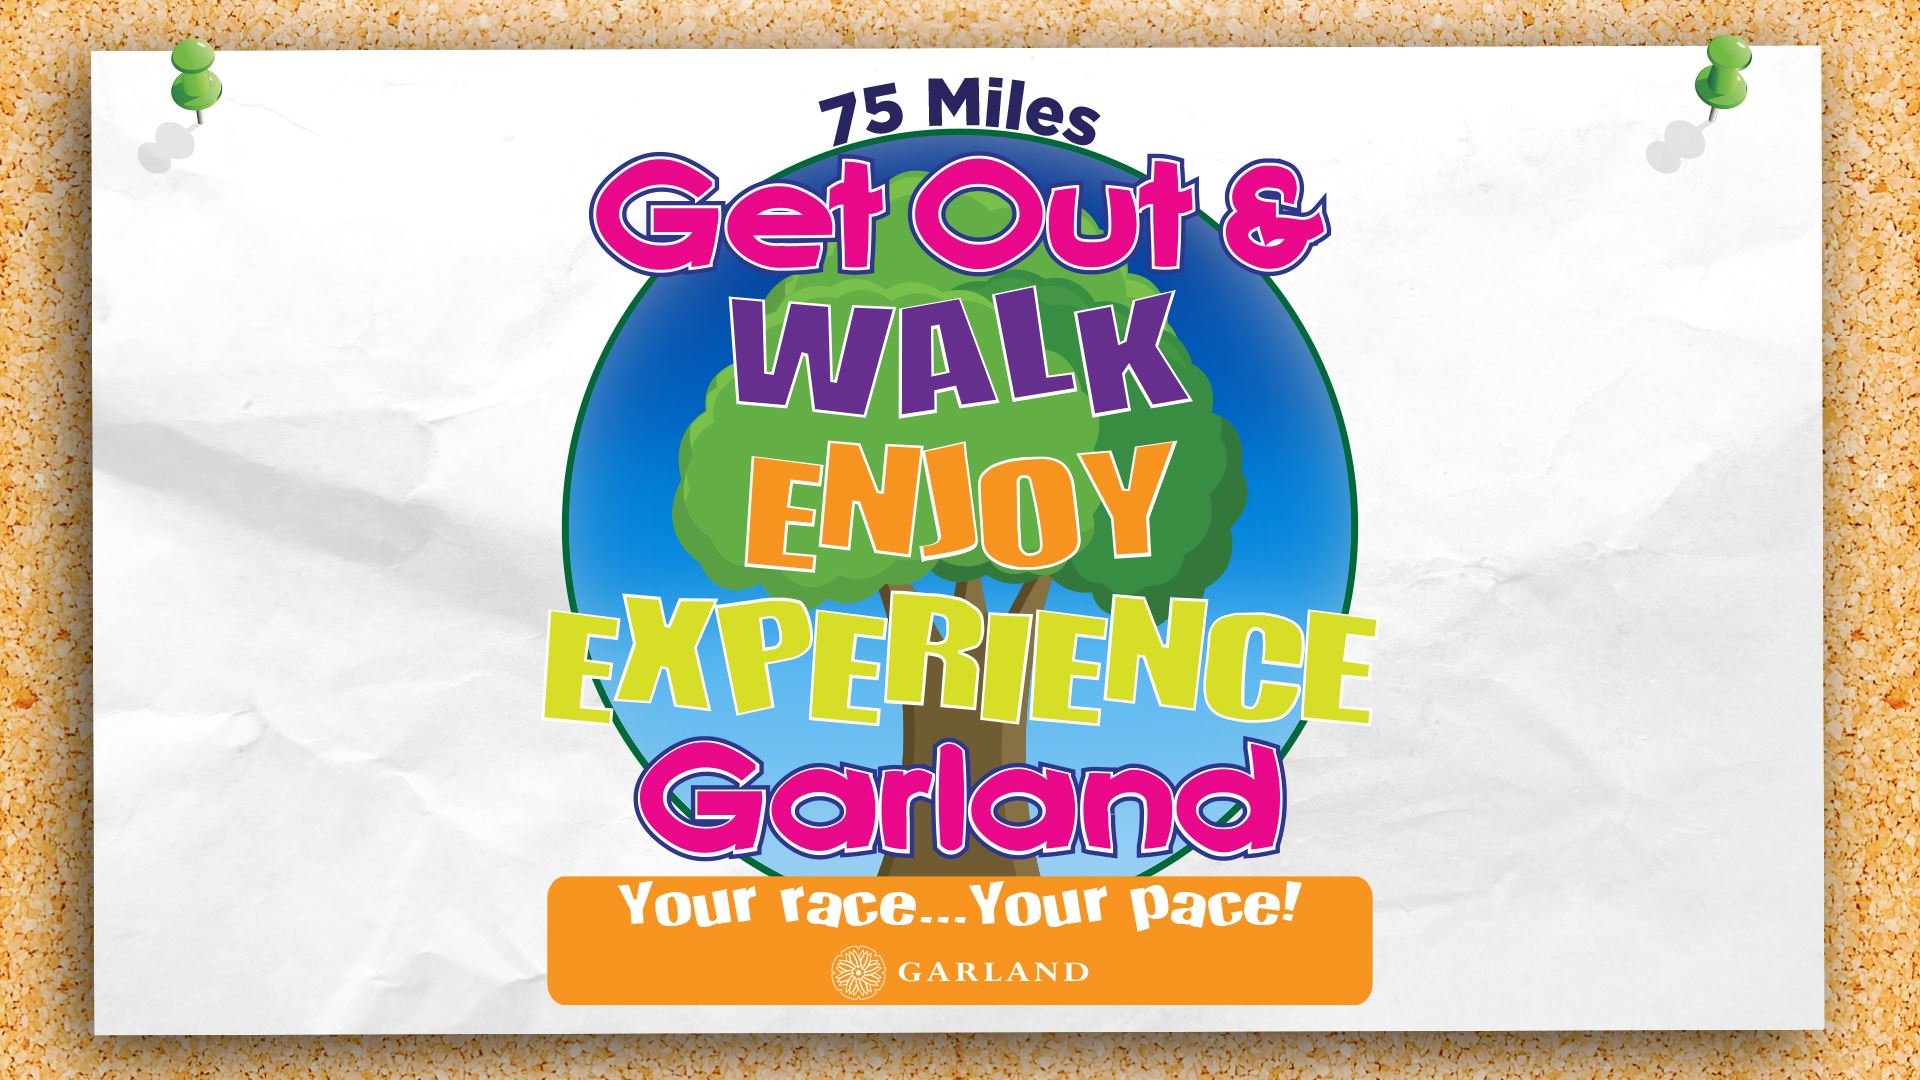 Walk Garland Virtual Run